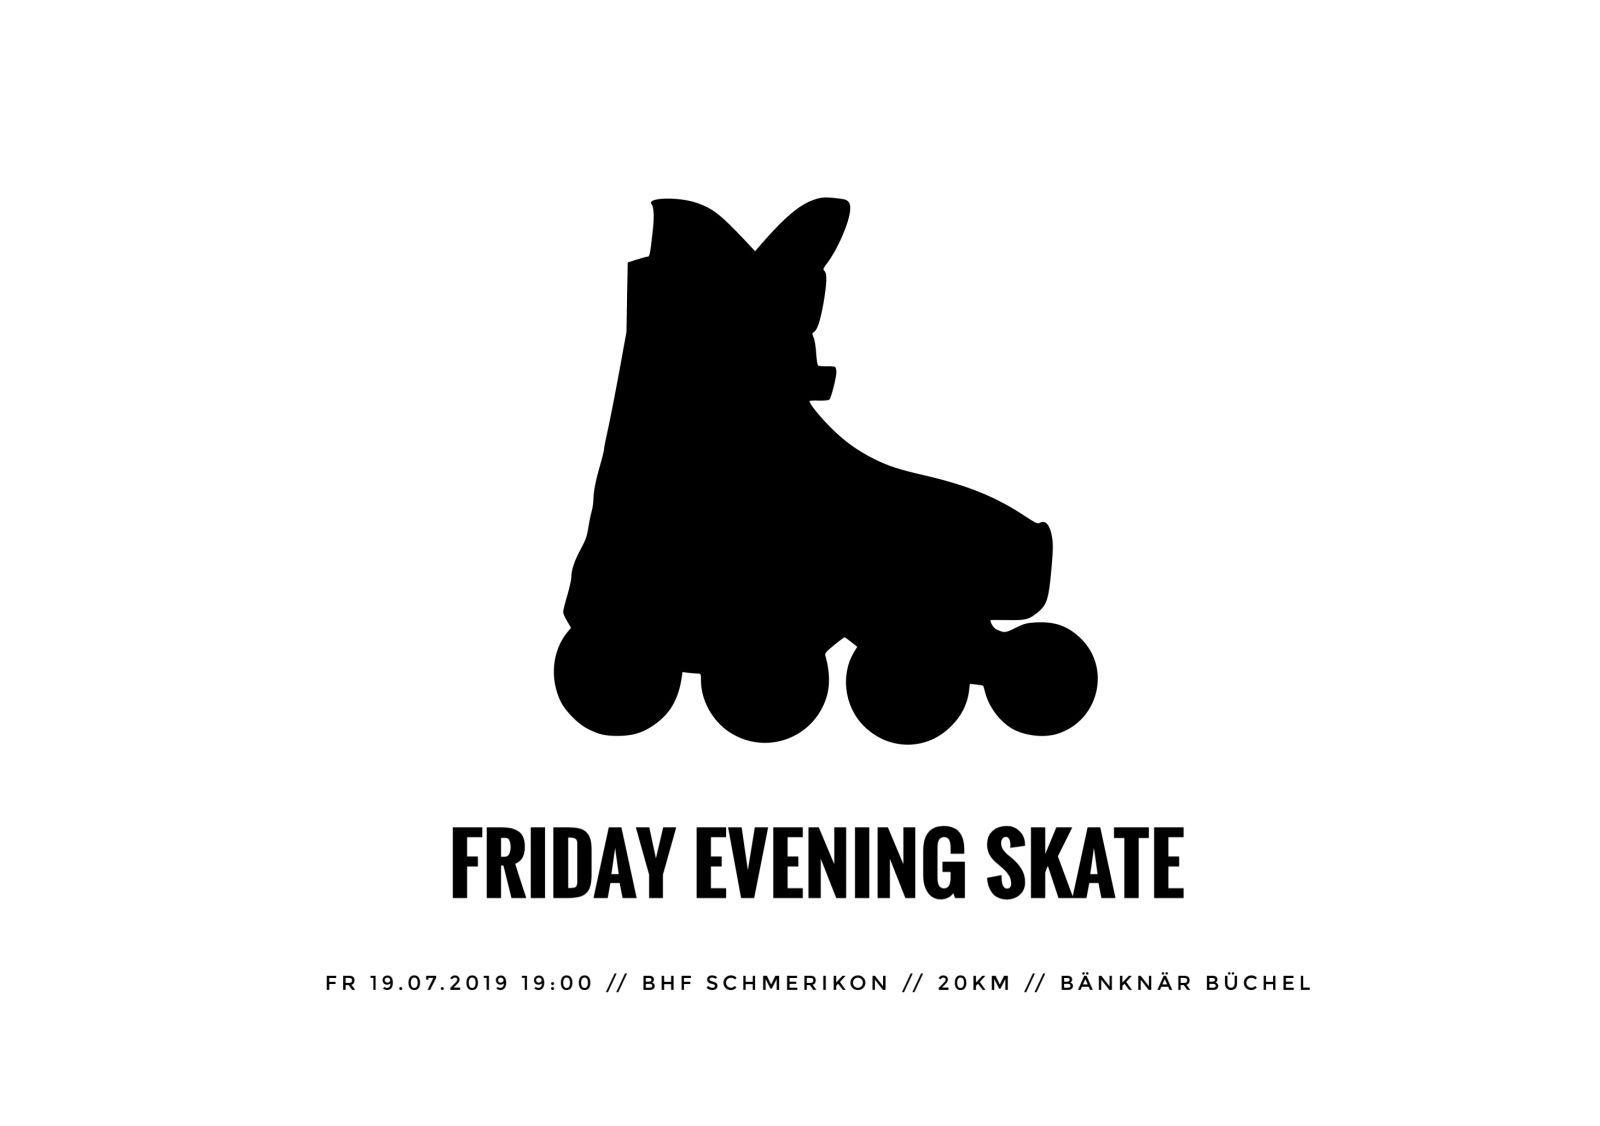 Friday Evening Skate